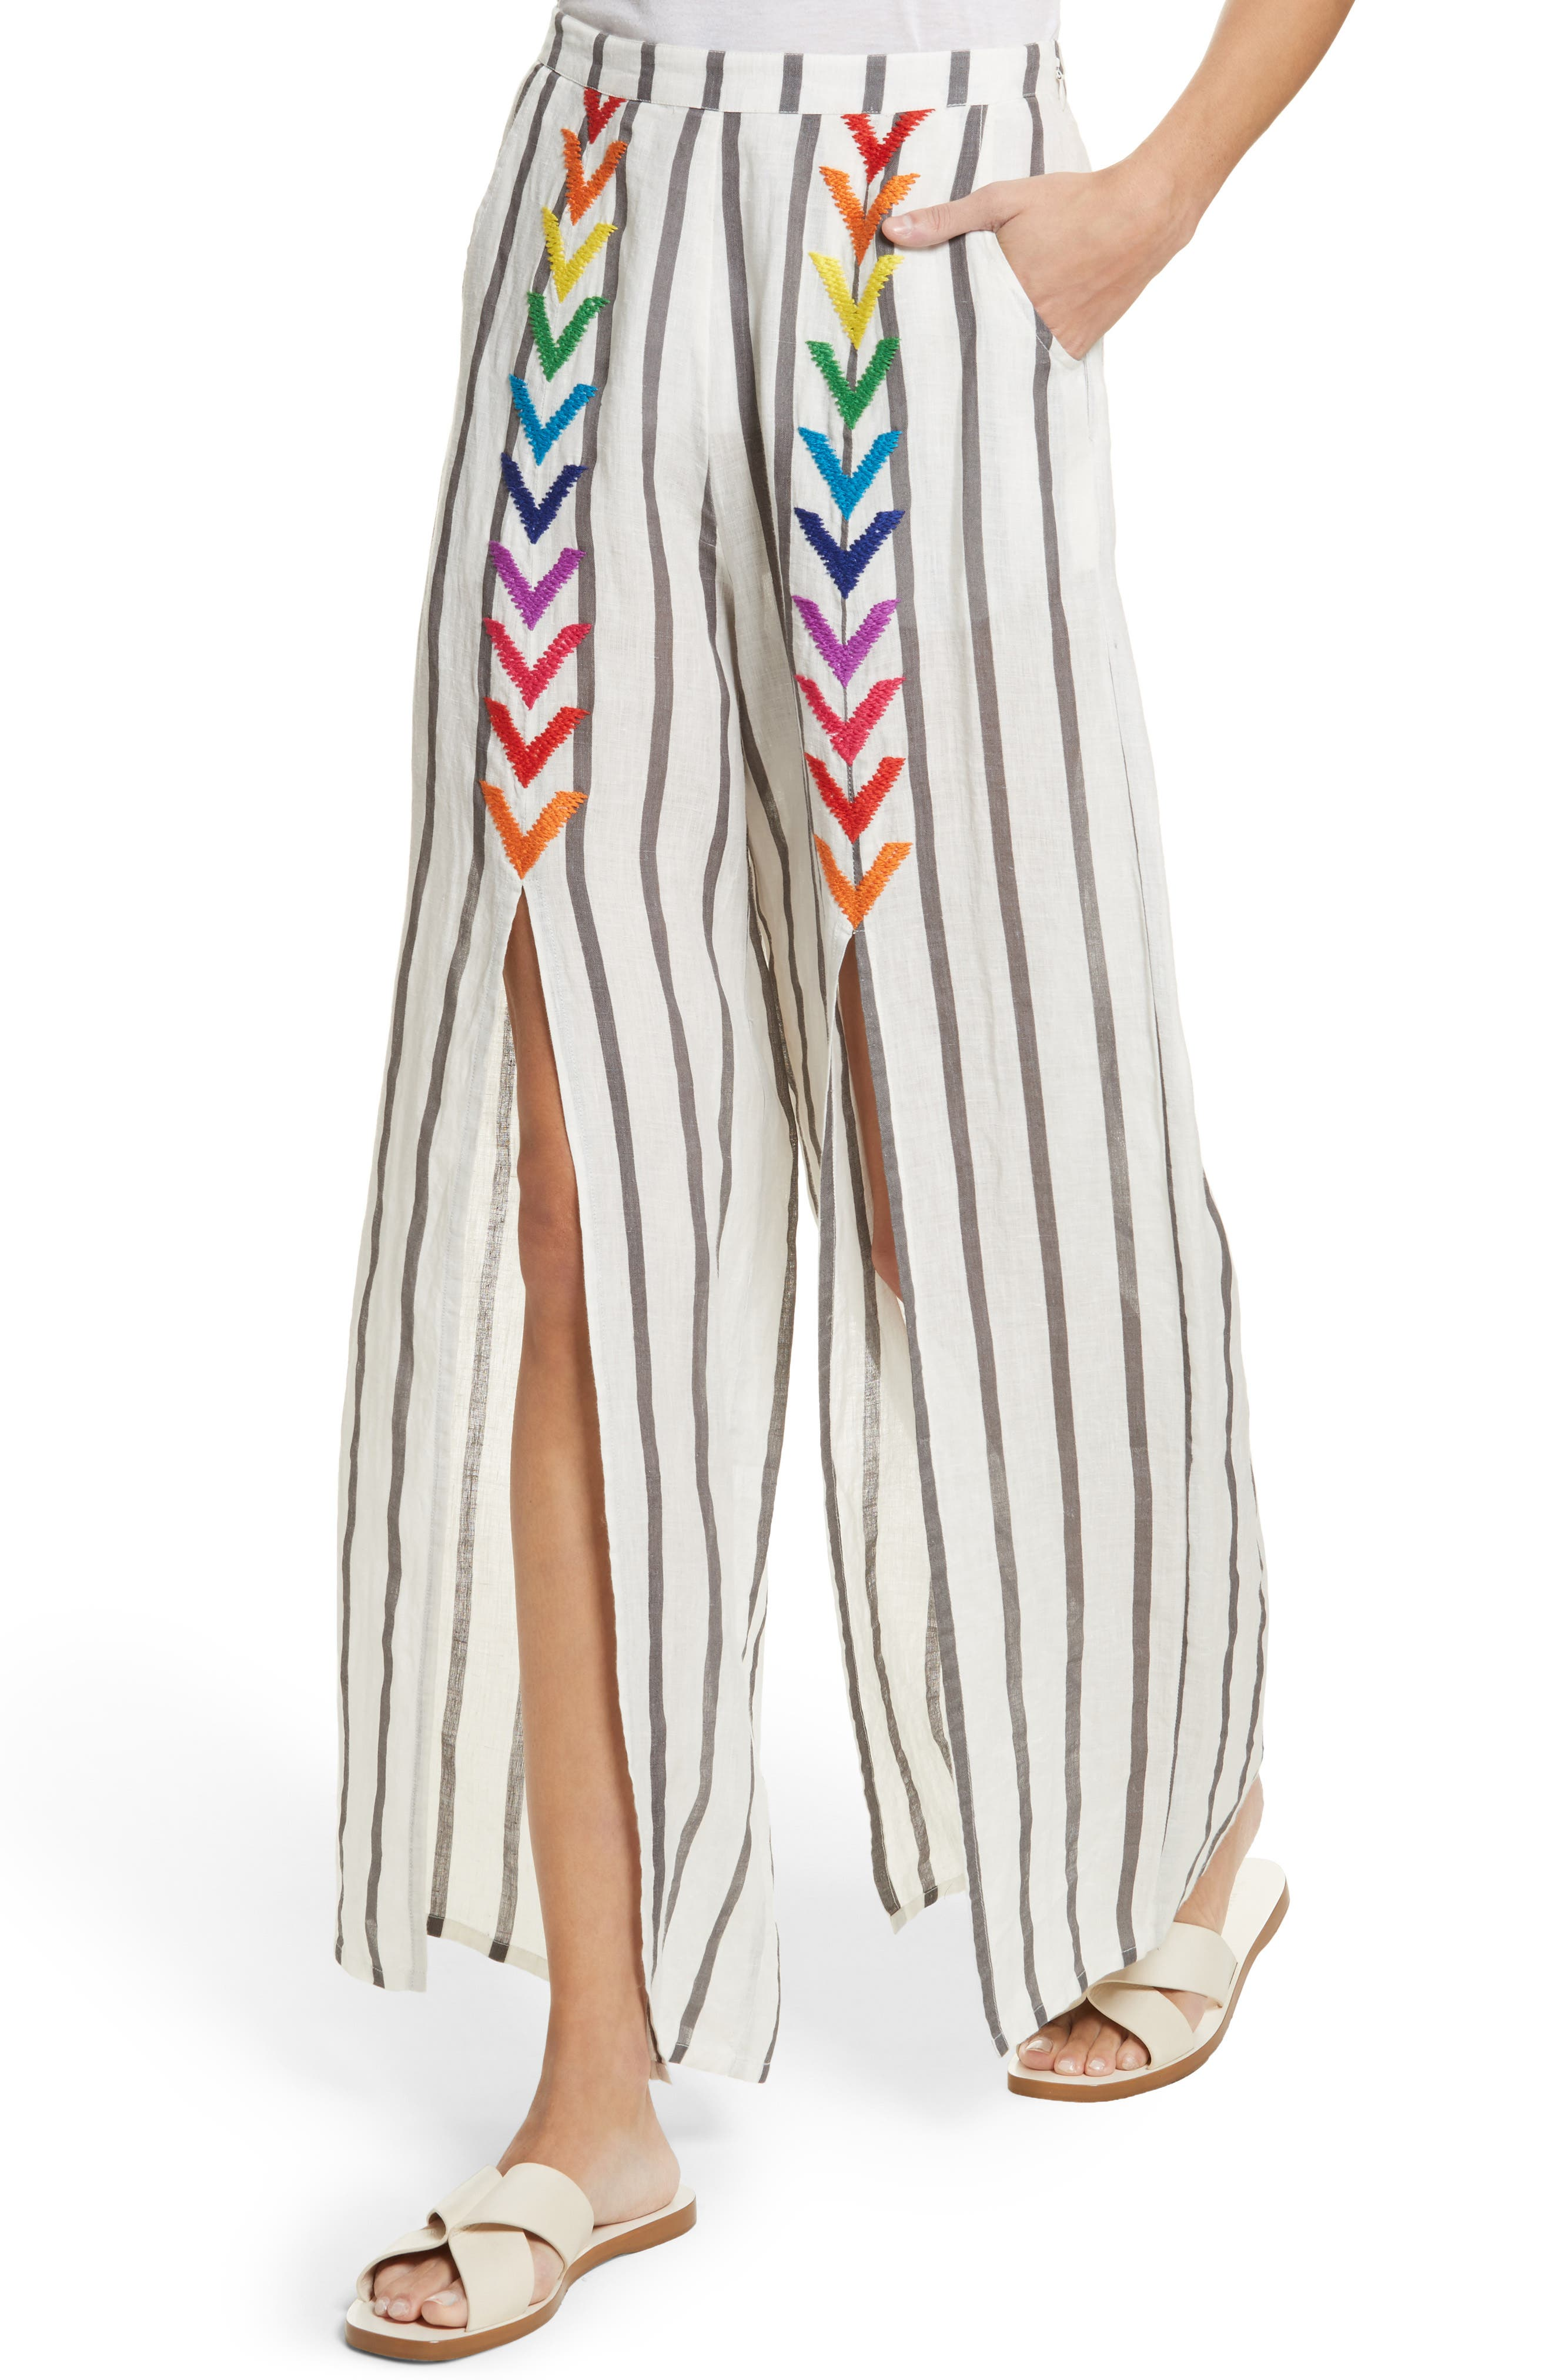 Andrea Embroidered Wide Leg Pants,                             Alternate thumbnail 4, color,                             Off White/ Grey